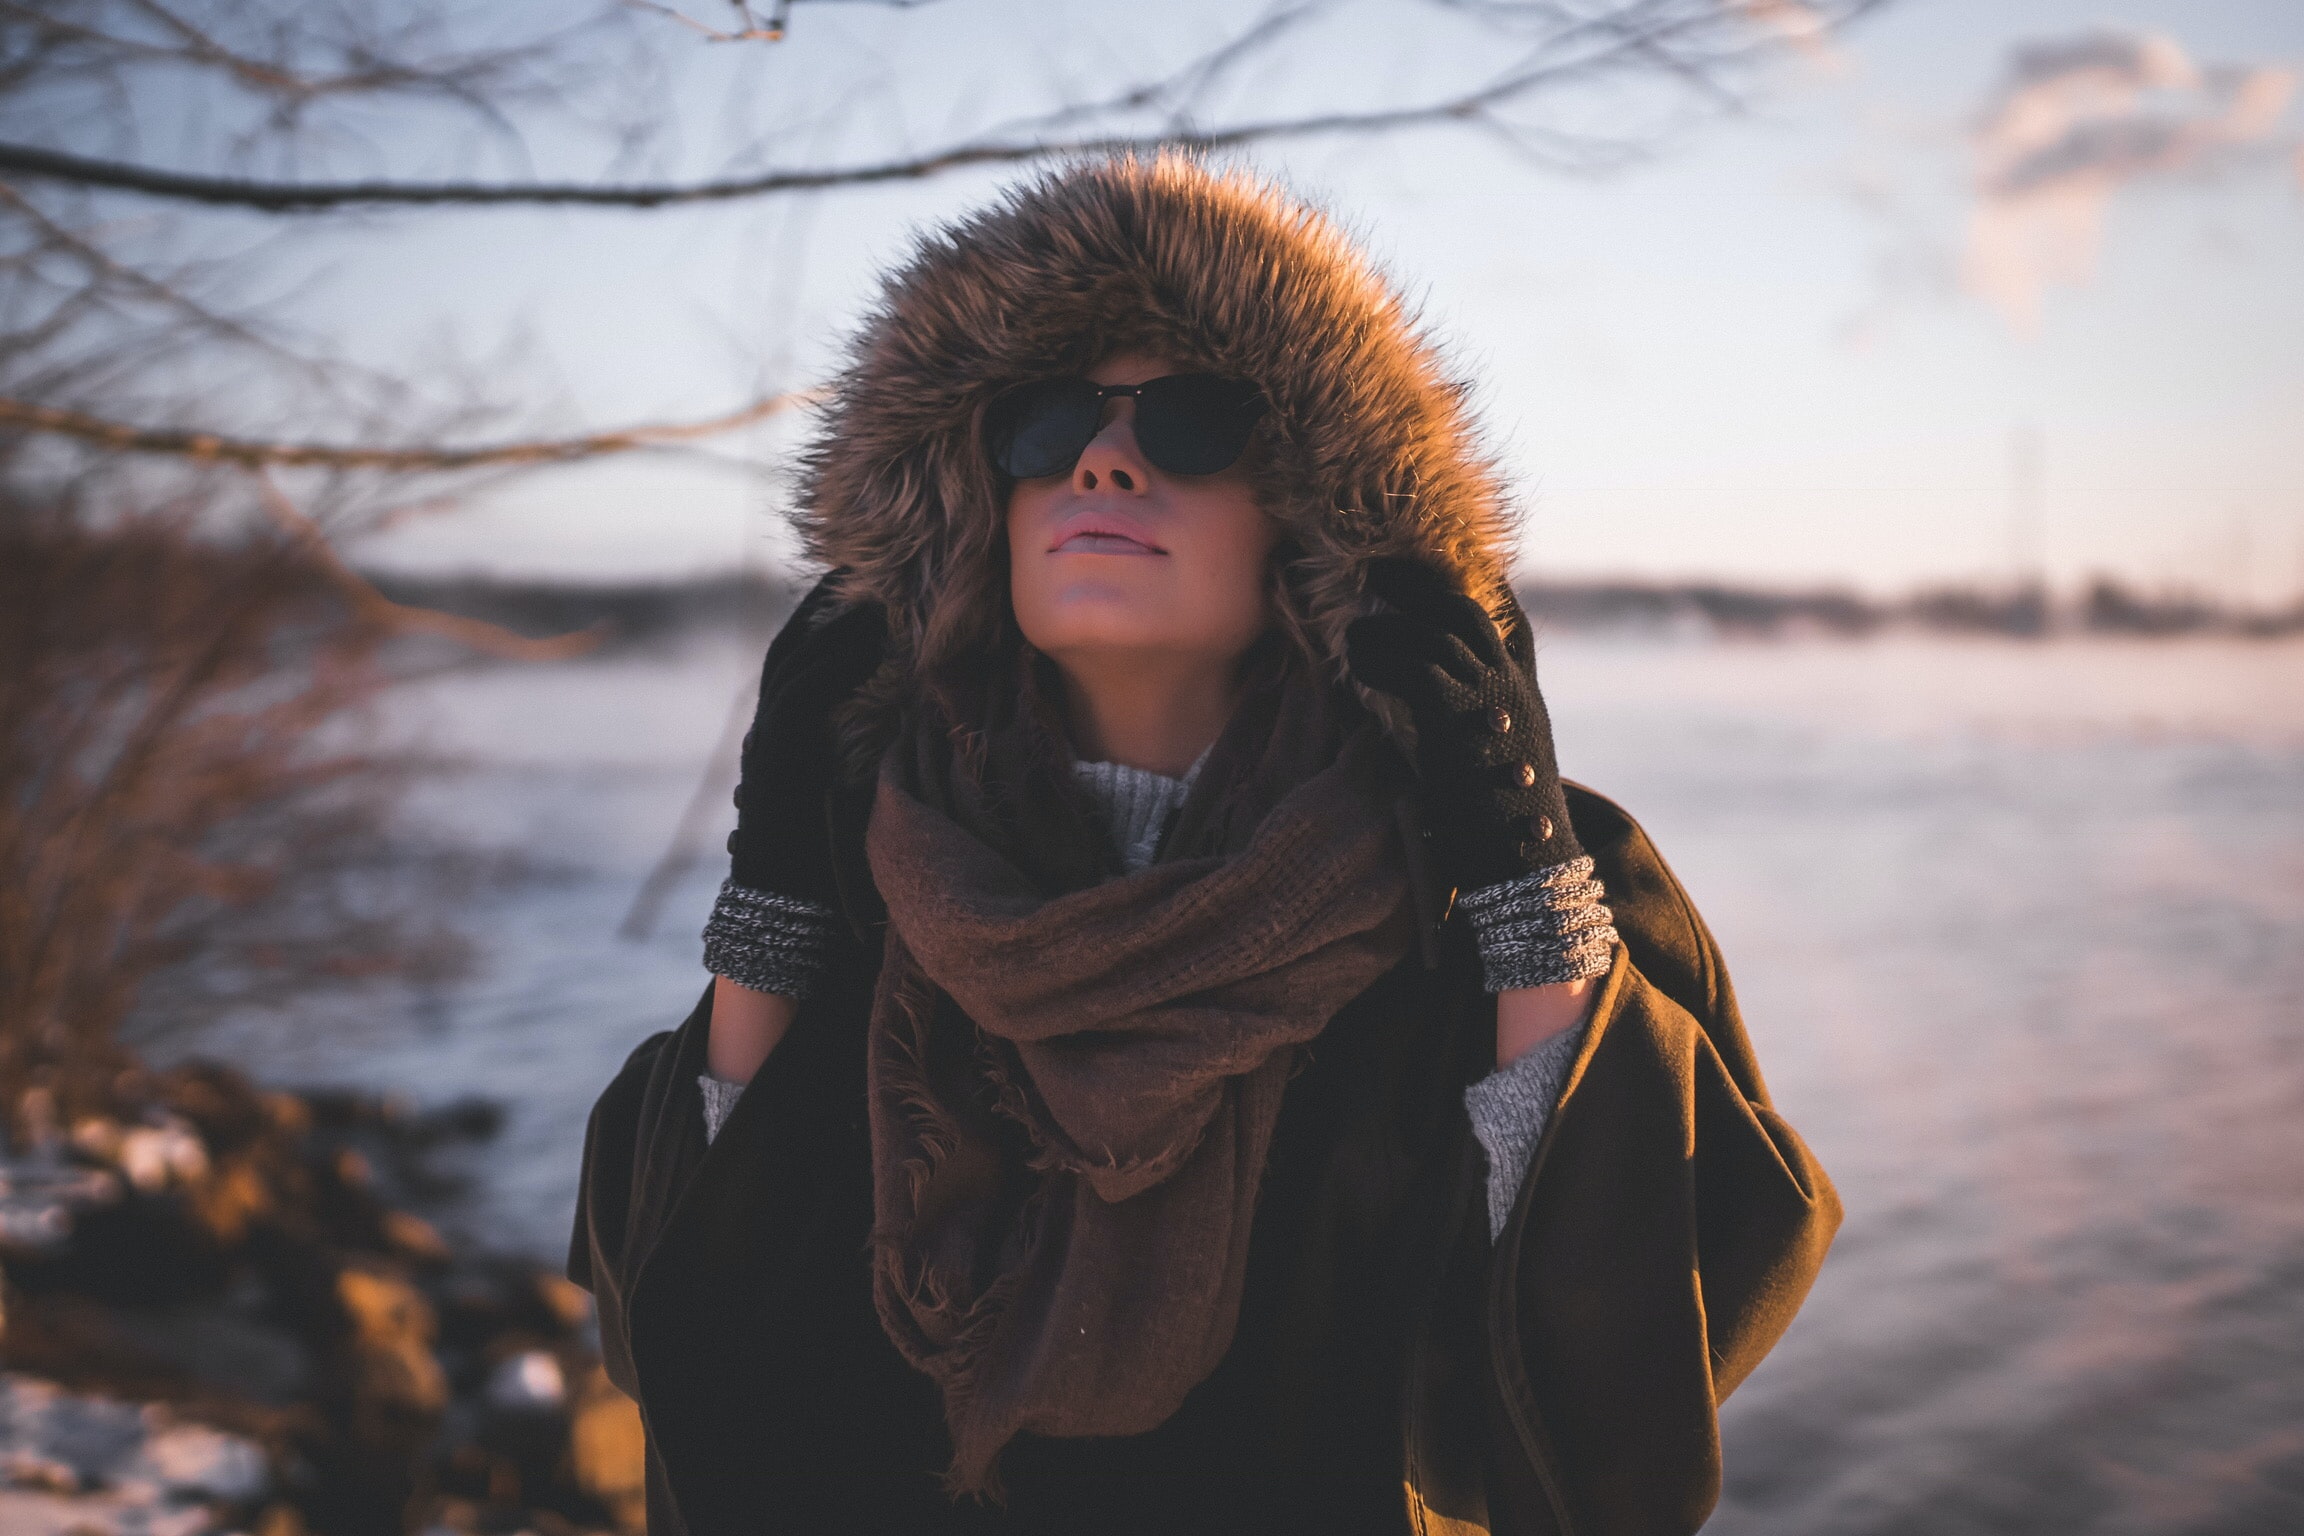 woman wearing fur hoodie near water